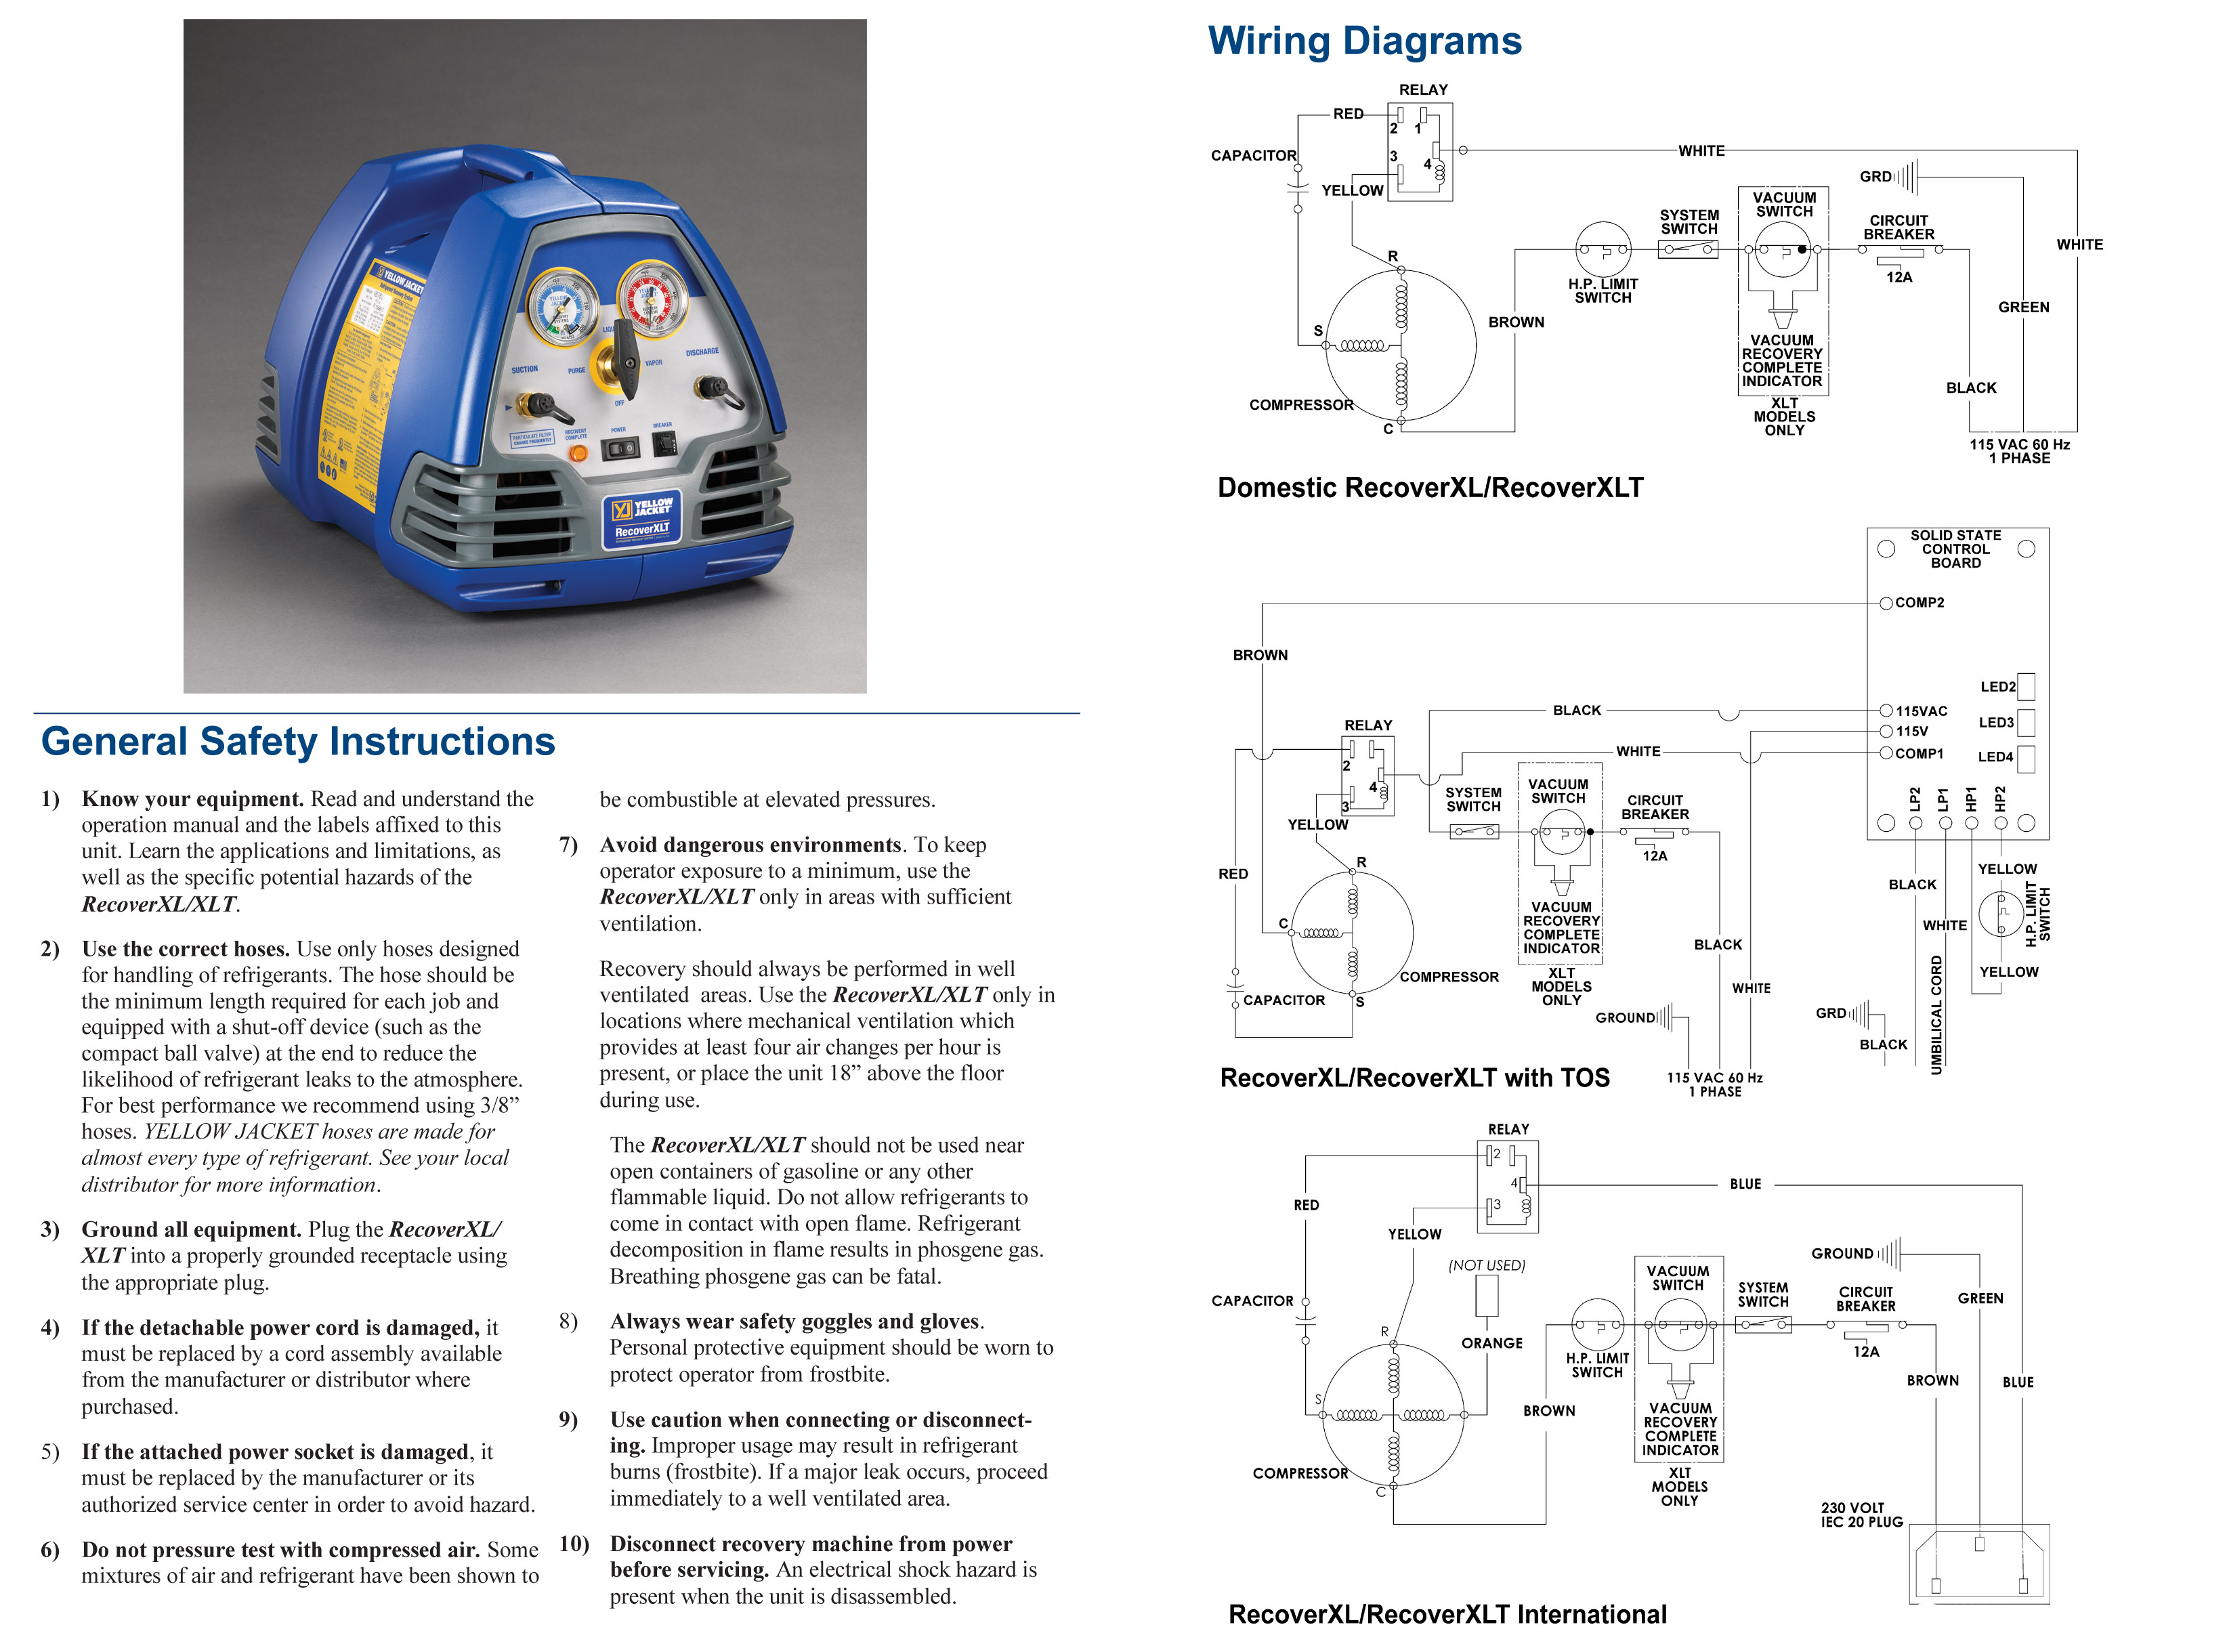 refrigerant recovery system  yellow jacket  95760 hvac wiring diagrams worksheets hvac wiring diagrams worksheets hvac wiring diagrams worksheets hvac wiring diagrams worksheets